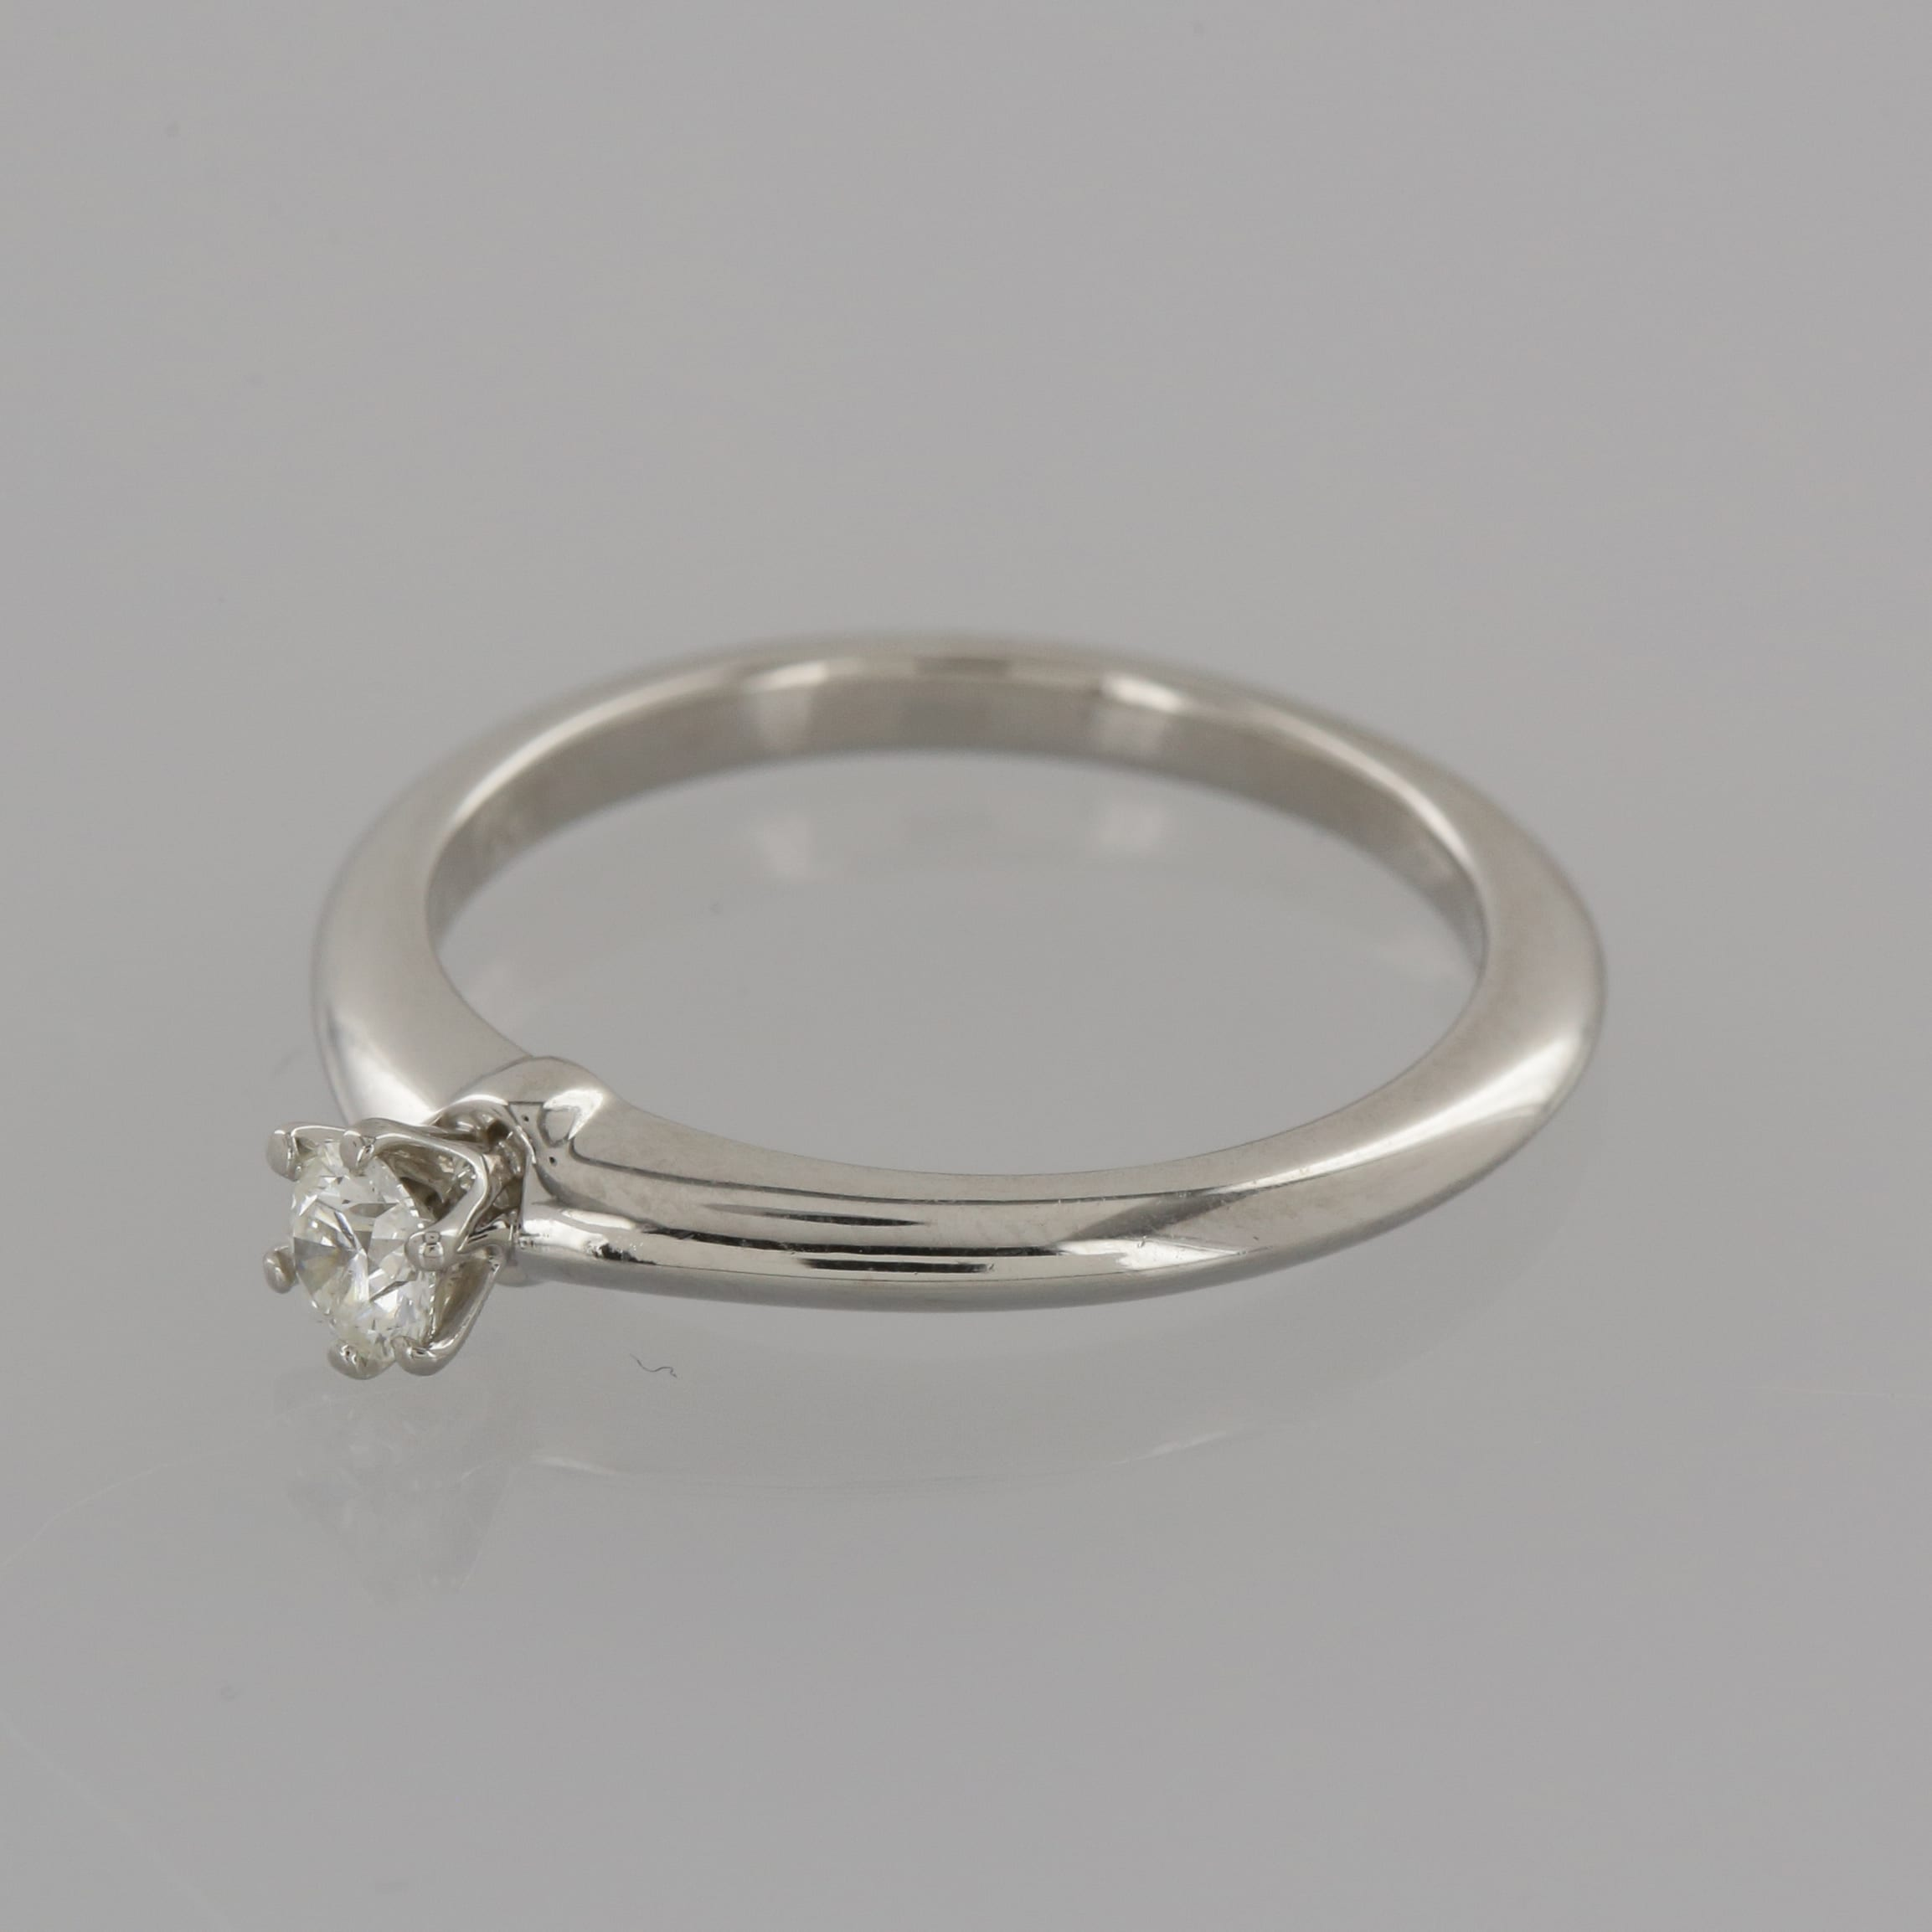 luxury of beautiful rings download tiffany wedding size diamond tif co full best band